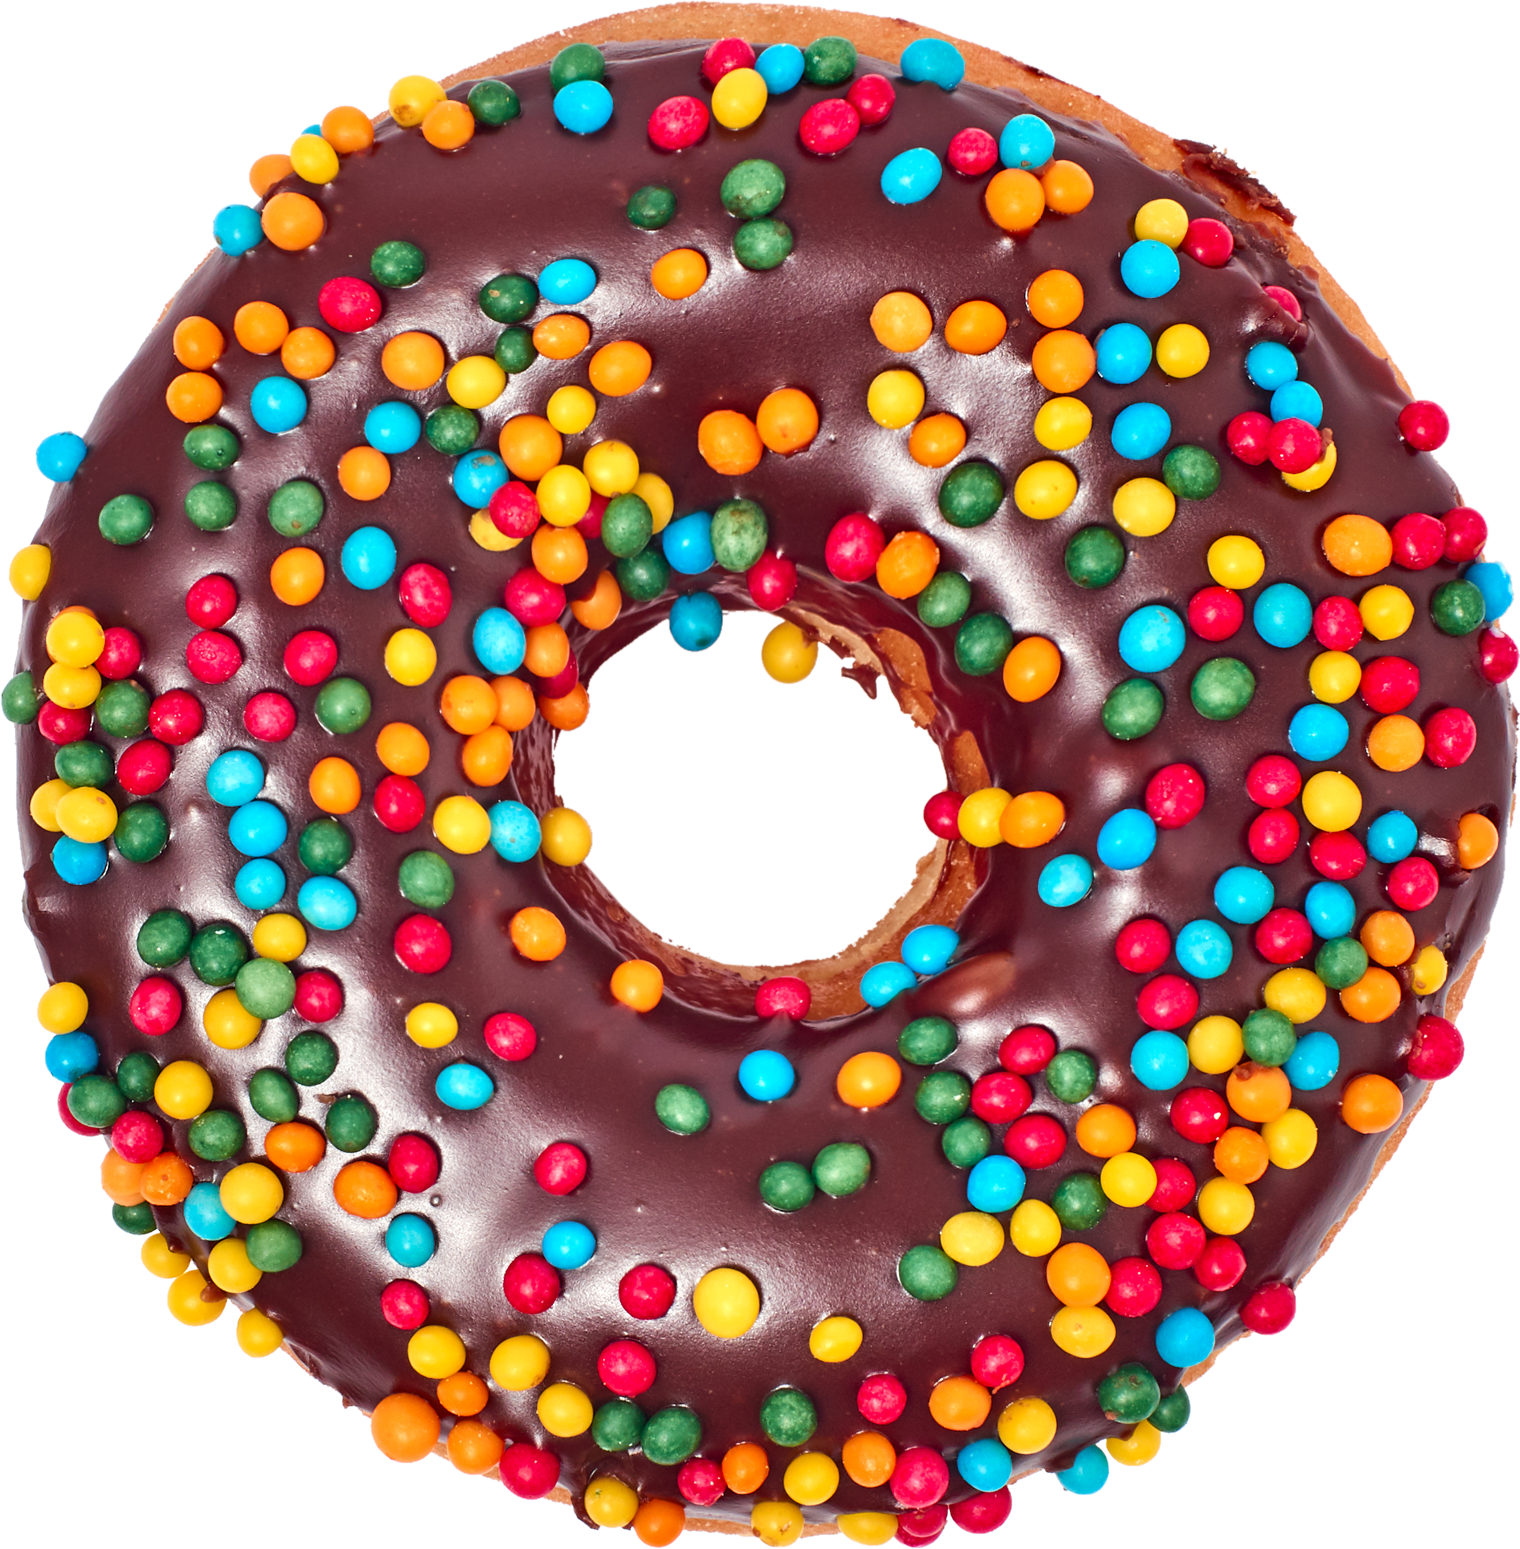 Donuts clipart sugar donut. Mr funk candy